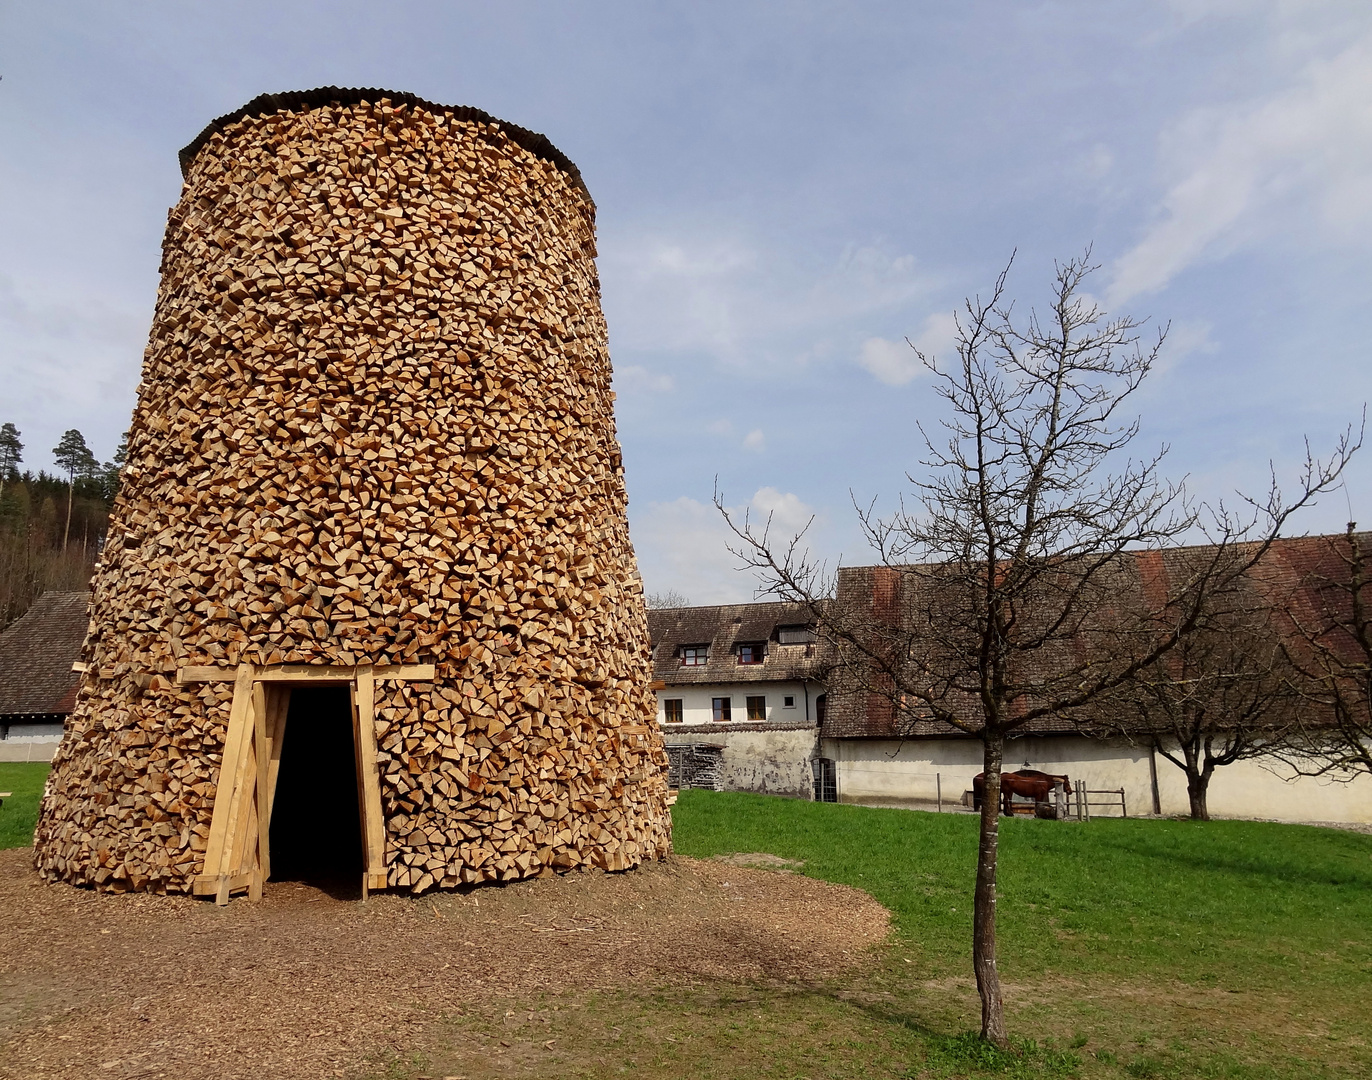 Scheiterturm / Log Tower